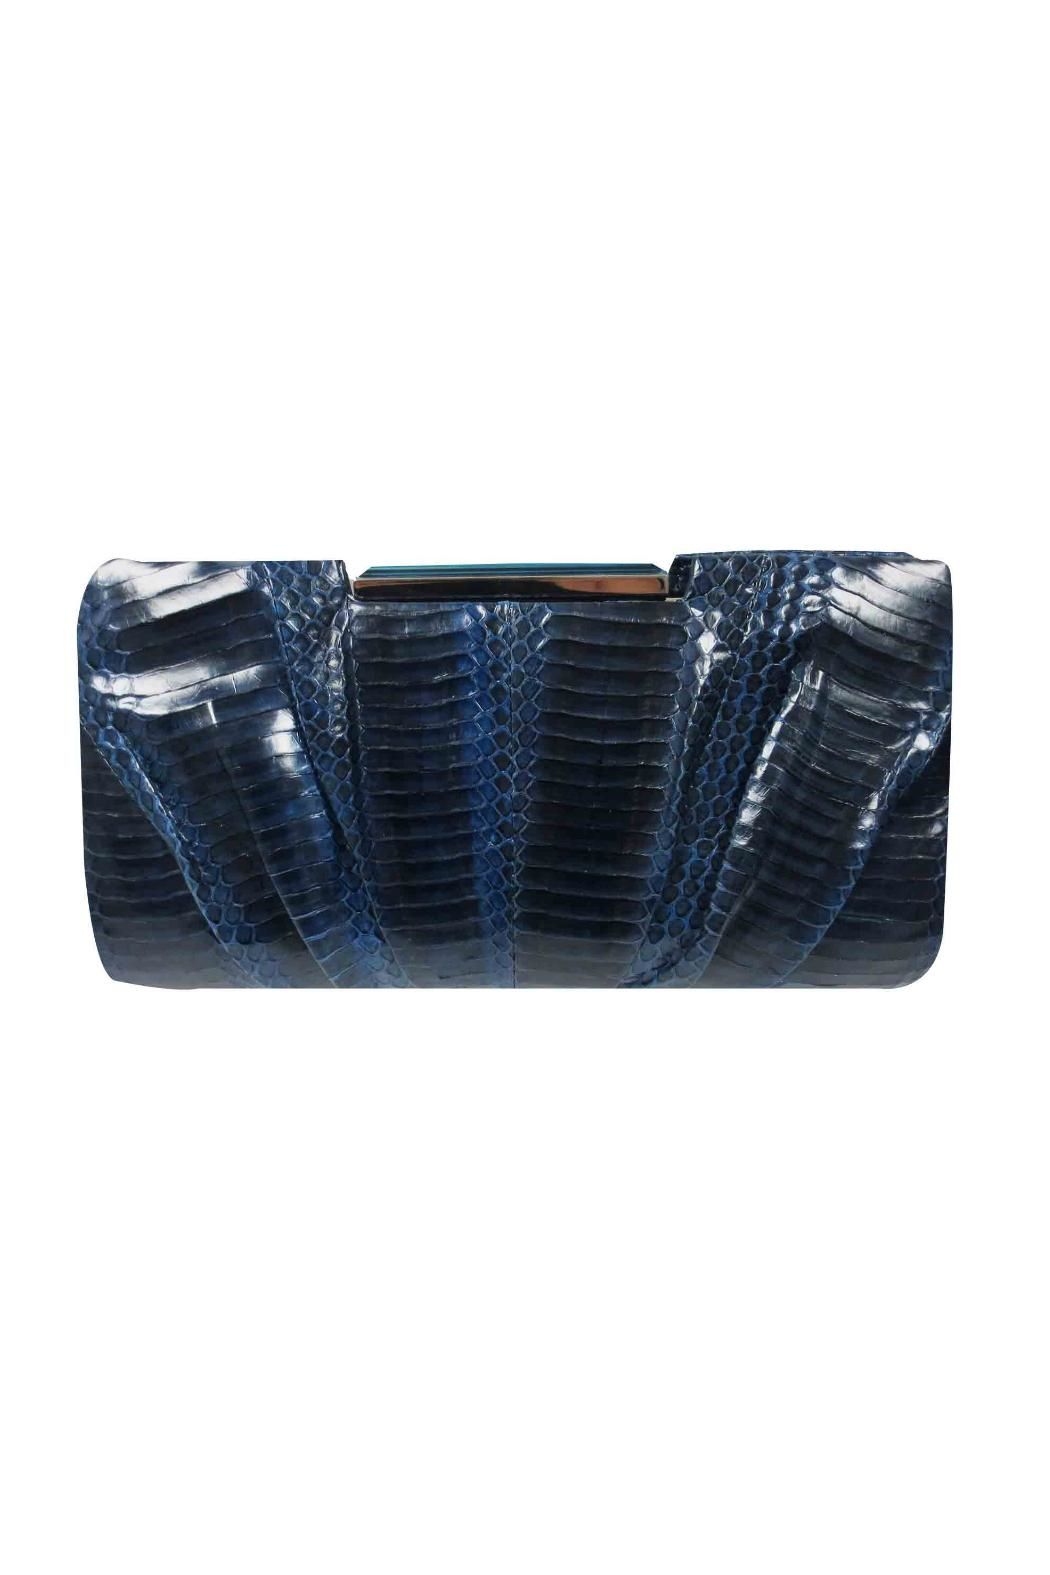 Sondra Roberts Pleated Snake Clutch - Front Cropped Image